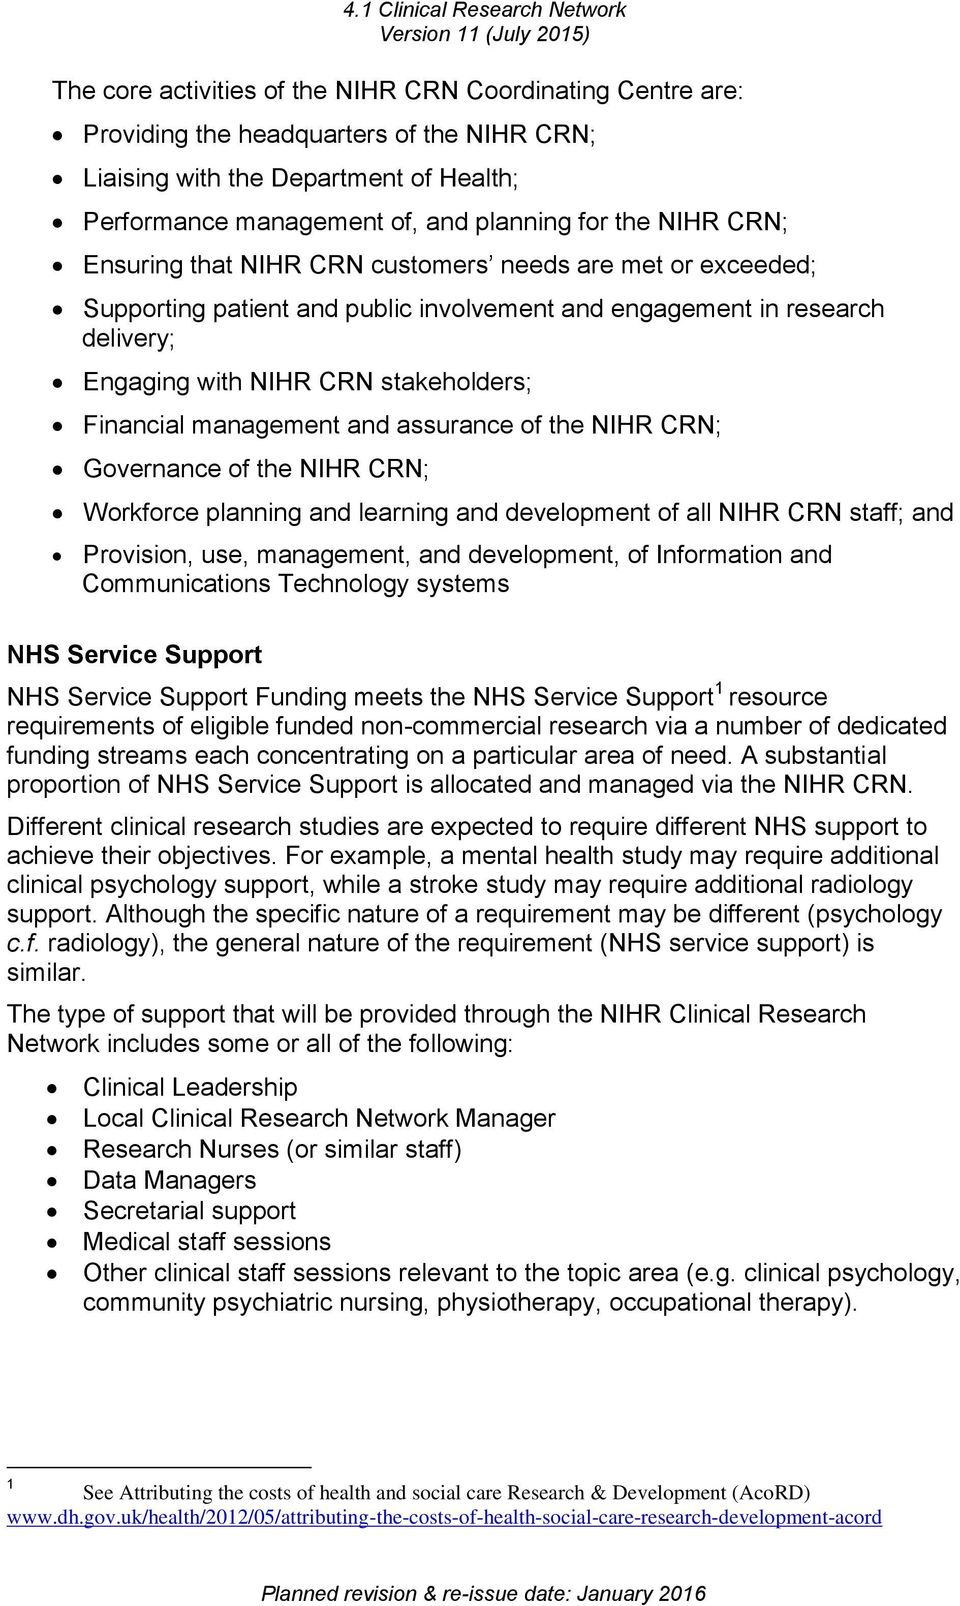 management and assurance of the NIHR CRN; Governance of the NIHR CRN; Workforce planning and learning and development of all NIHR CRN staff; and Provision, use, management, and development, of